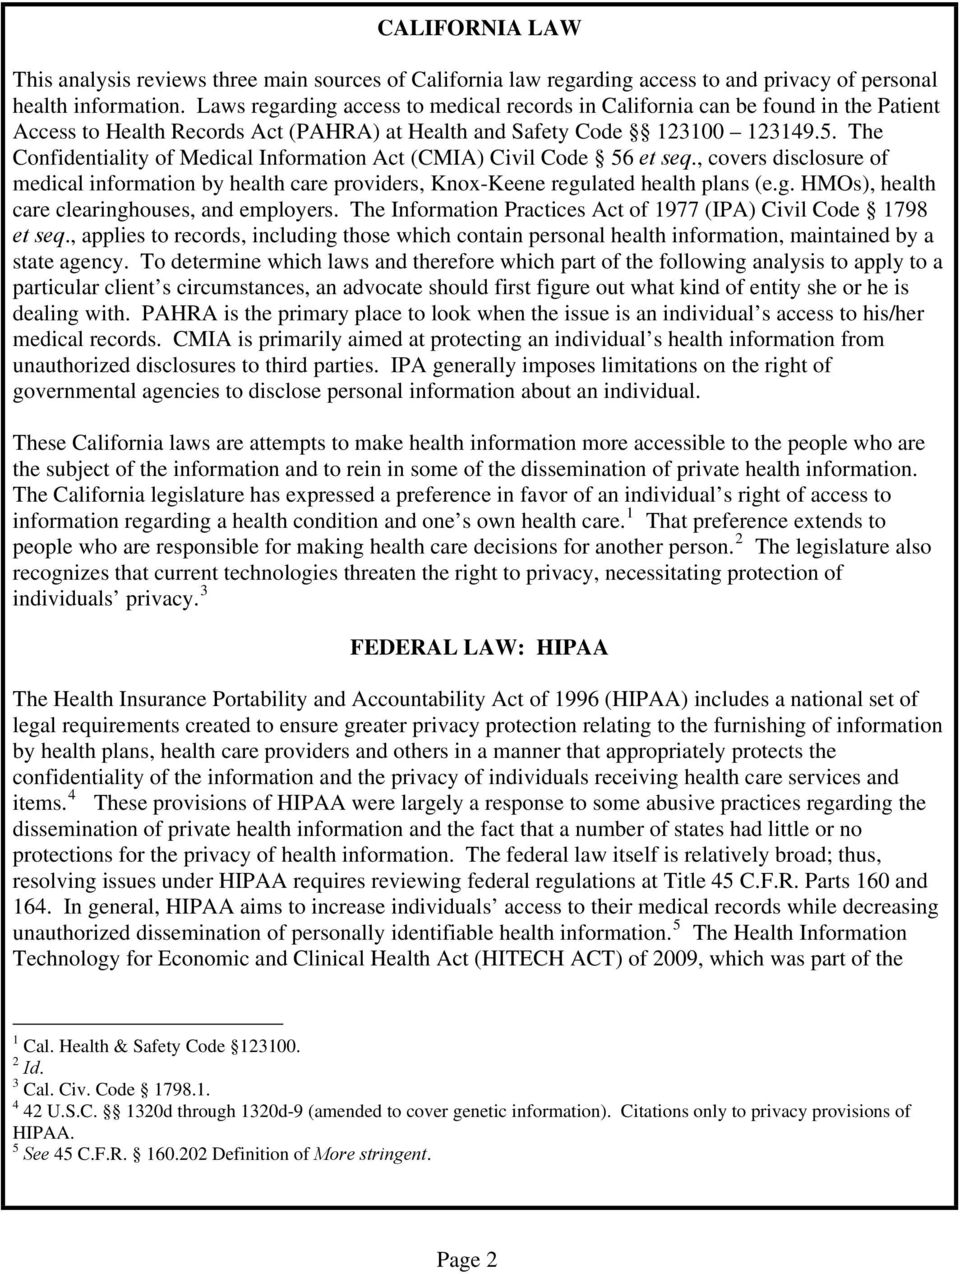 The Confidentiality of Medical Information Act (CMIA) Civil Code 56 et seq., covers disclosure of medical information by health care providers, Knox-Keene regu